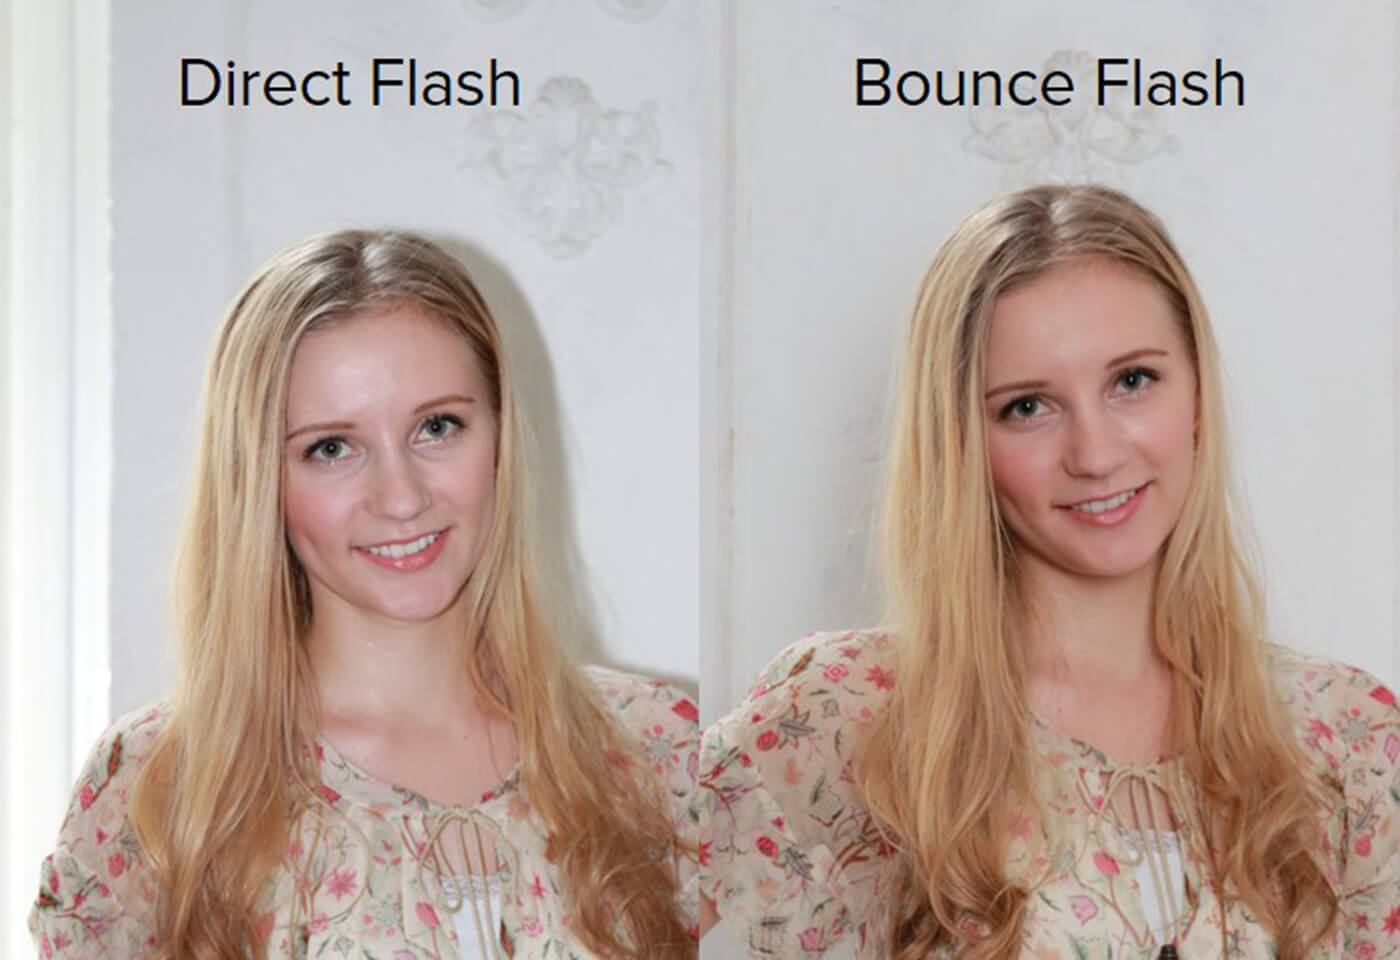 Image of side by side comparison taken with 470EX-AI Speedlite